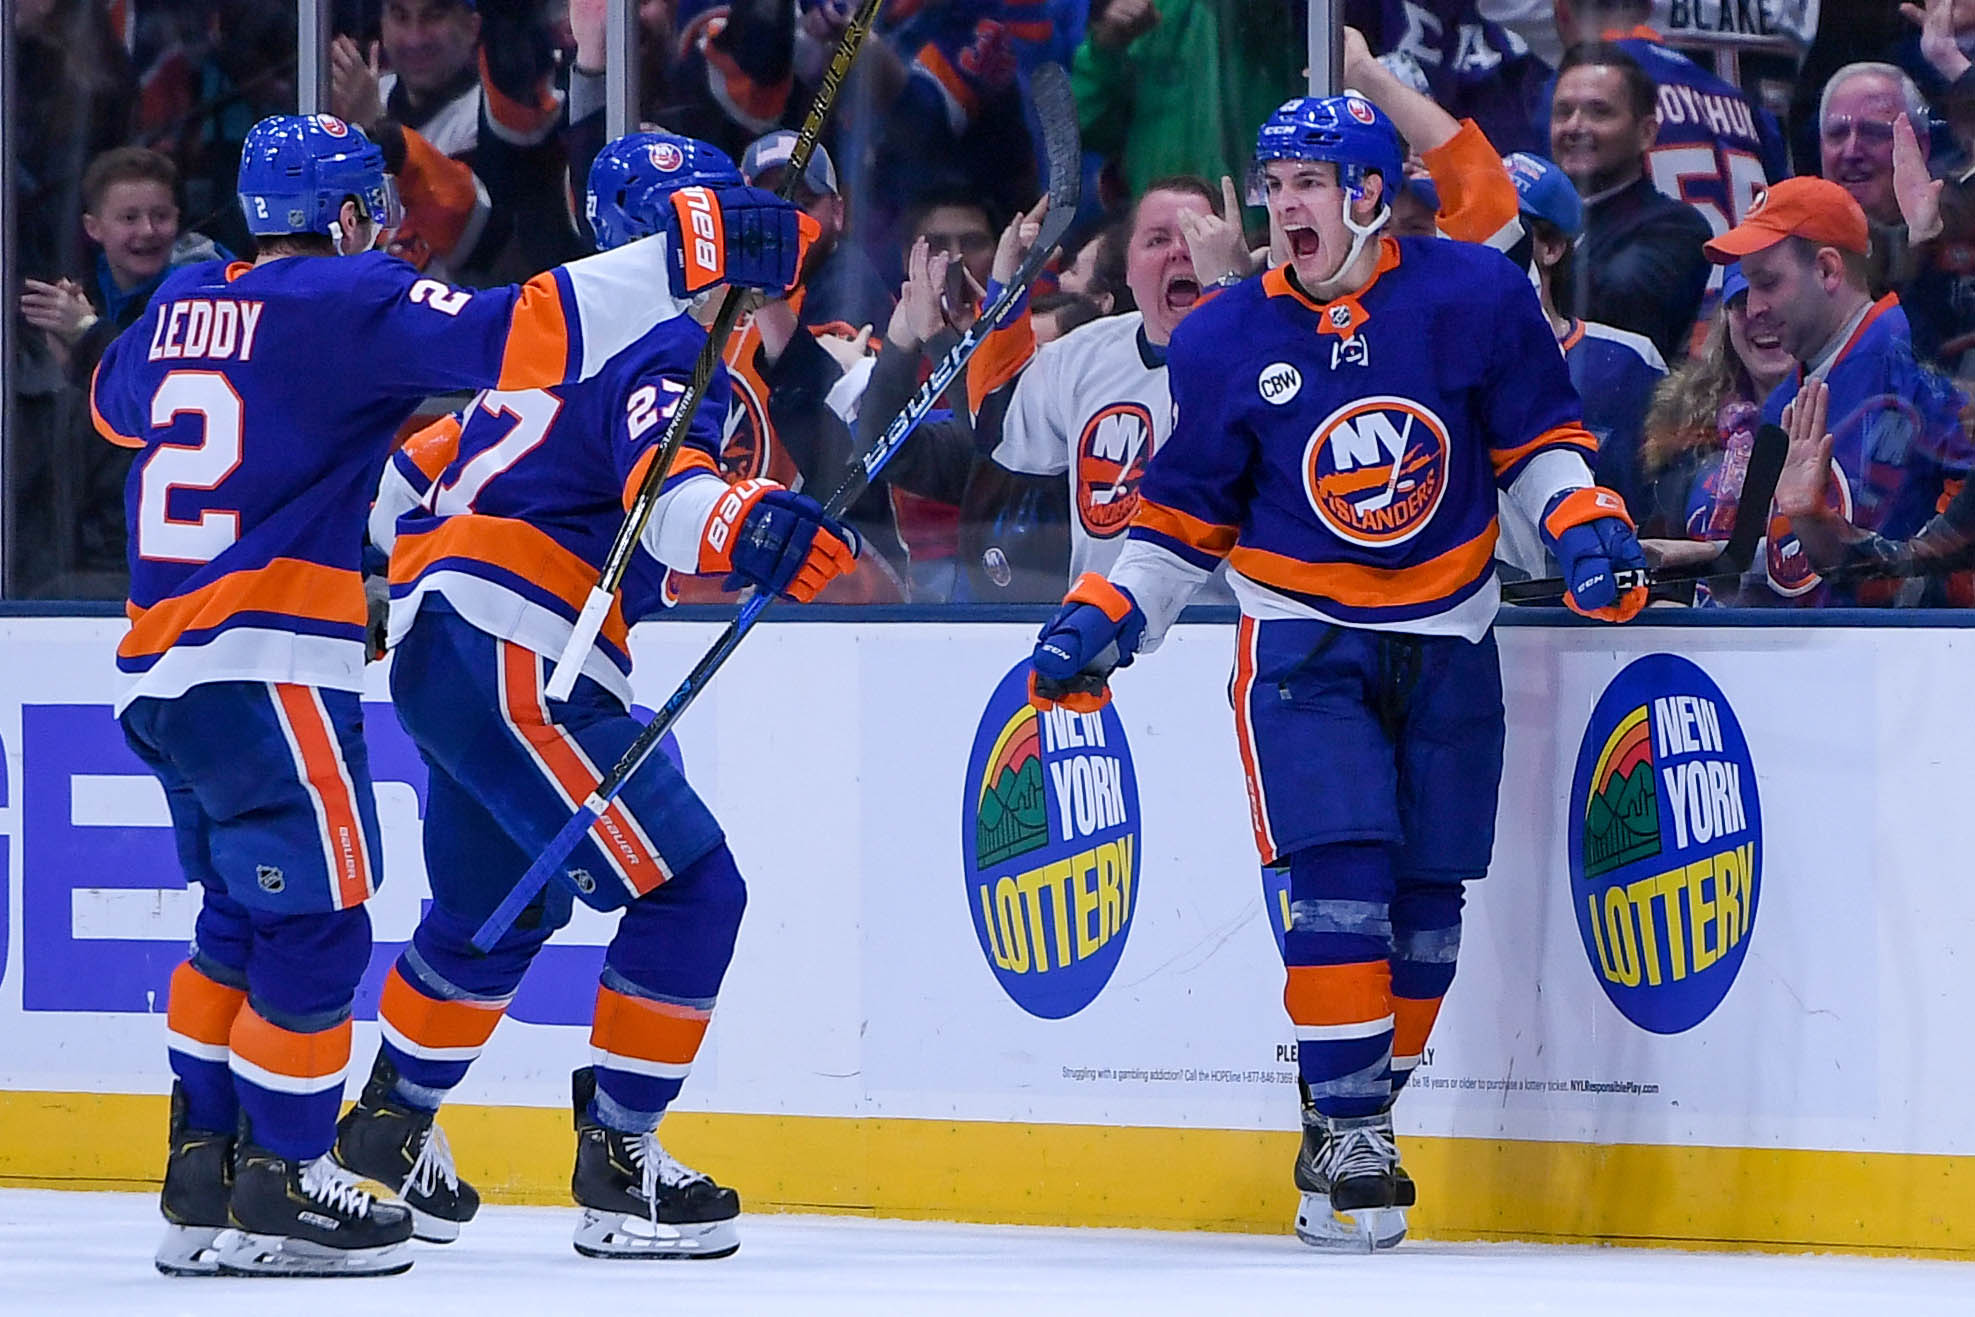 Dec 15, 2018; Uniondale, NY, USA; New York Islanders center Mathew Barzal (13) celebrates with New York Islanders defenseman Nick Leddy (2) and New York Islanders left wing Anders Lee (27) after scoring a goal against the Detroit Red Wings during the third period at Nassau Veterans Memorial Coliseum. Mandatory Credit: Dennis Schneidler-USA TODAY Sports